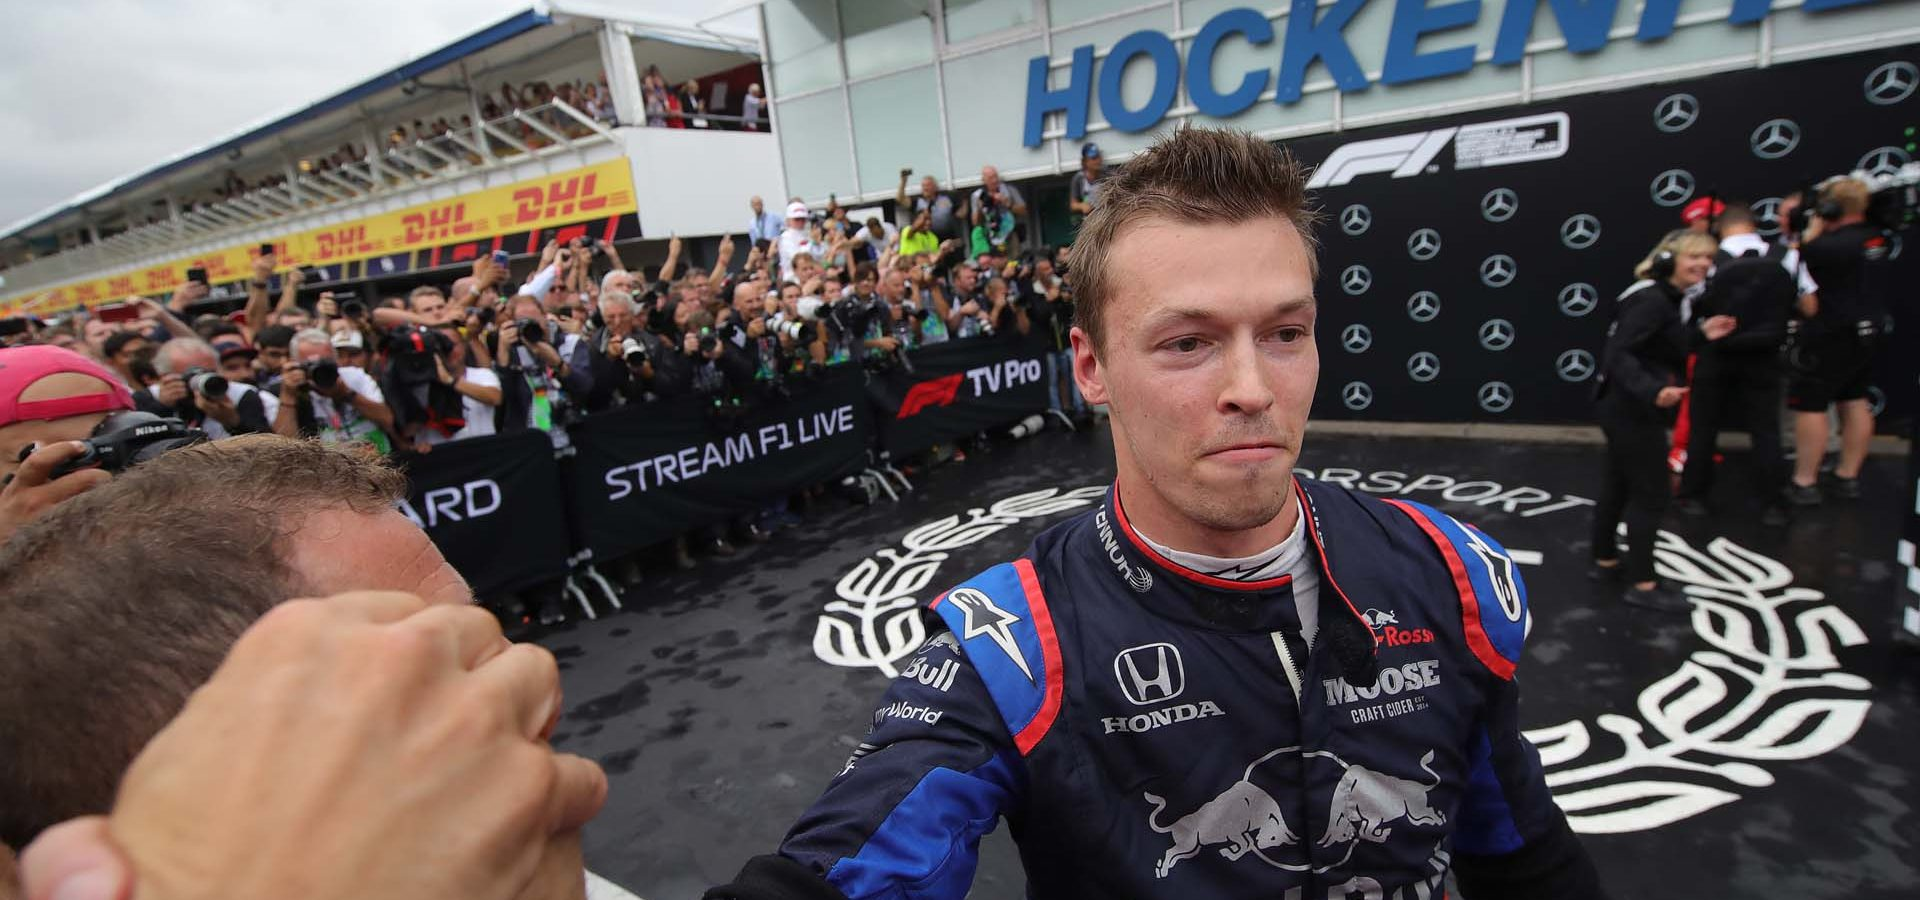 HOCKENHEIM, GERMANY - JULY 28: Third placed Daniil Kvyat of Russia and Scuderia Toro Rosso celebrates in parc ferme during the F1 Grand Prix of Germany at Hockenheimring on July 28, 2019 in Hockenheim, Germany. (Photo by Alexander Hassenstein/Getty Images) // Getty Images / Red Bull Content Pool  // AP-213AK1VH52111 // Usage for editorial use only // Please go to www.redbullcontentpool.com for further information. //